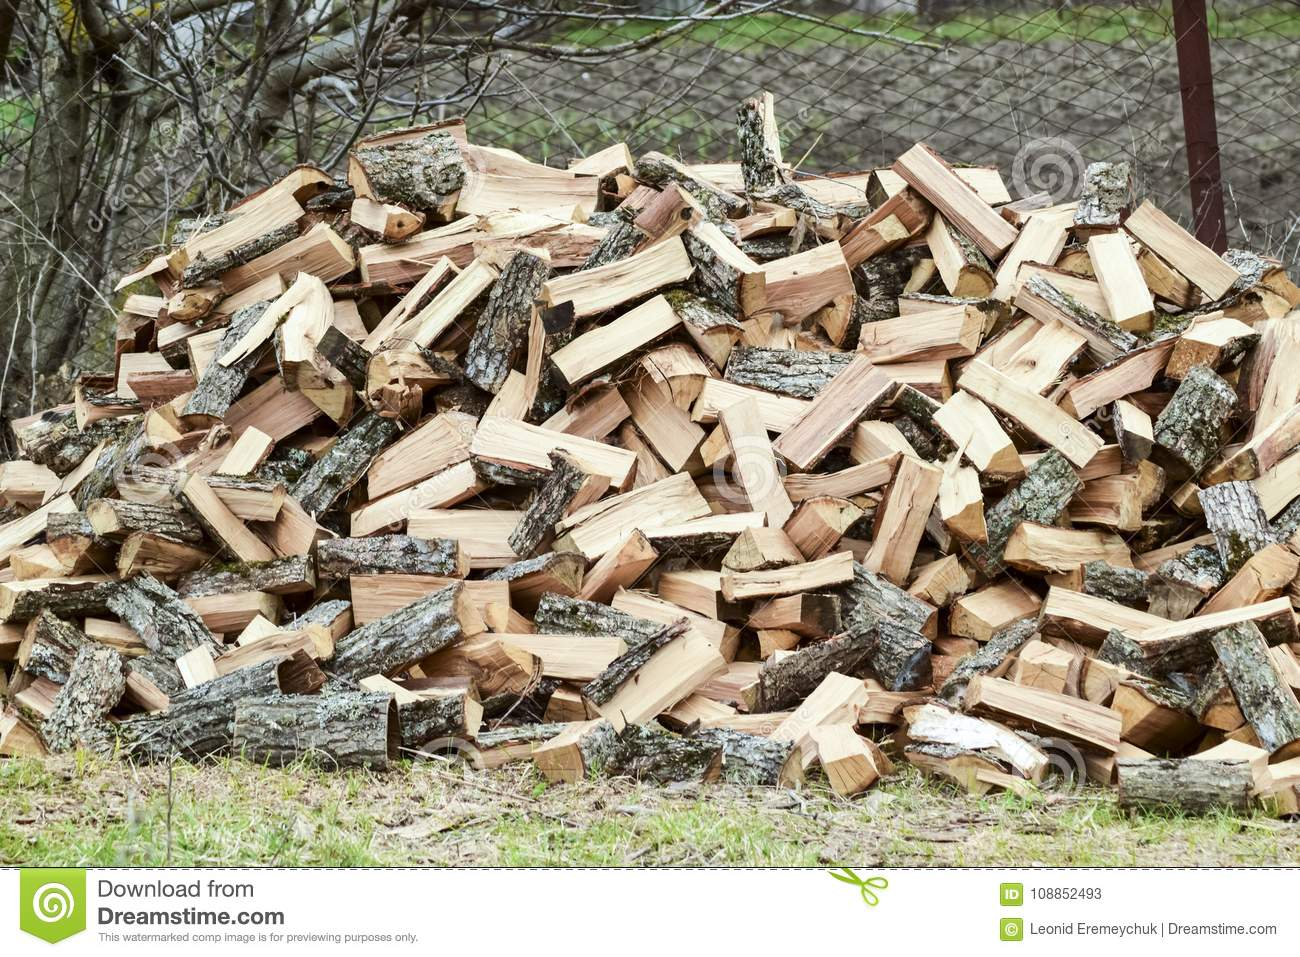 A pile of punctured firewood. Harvested wood for the stove